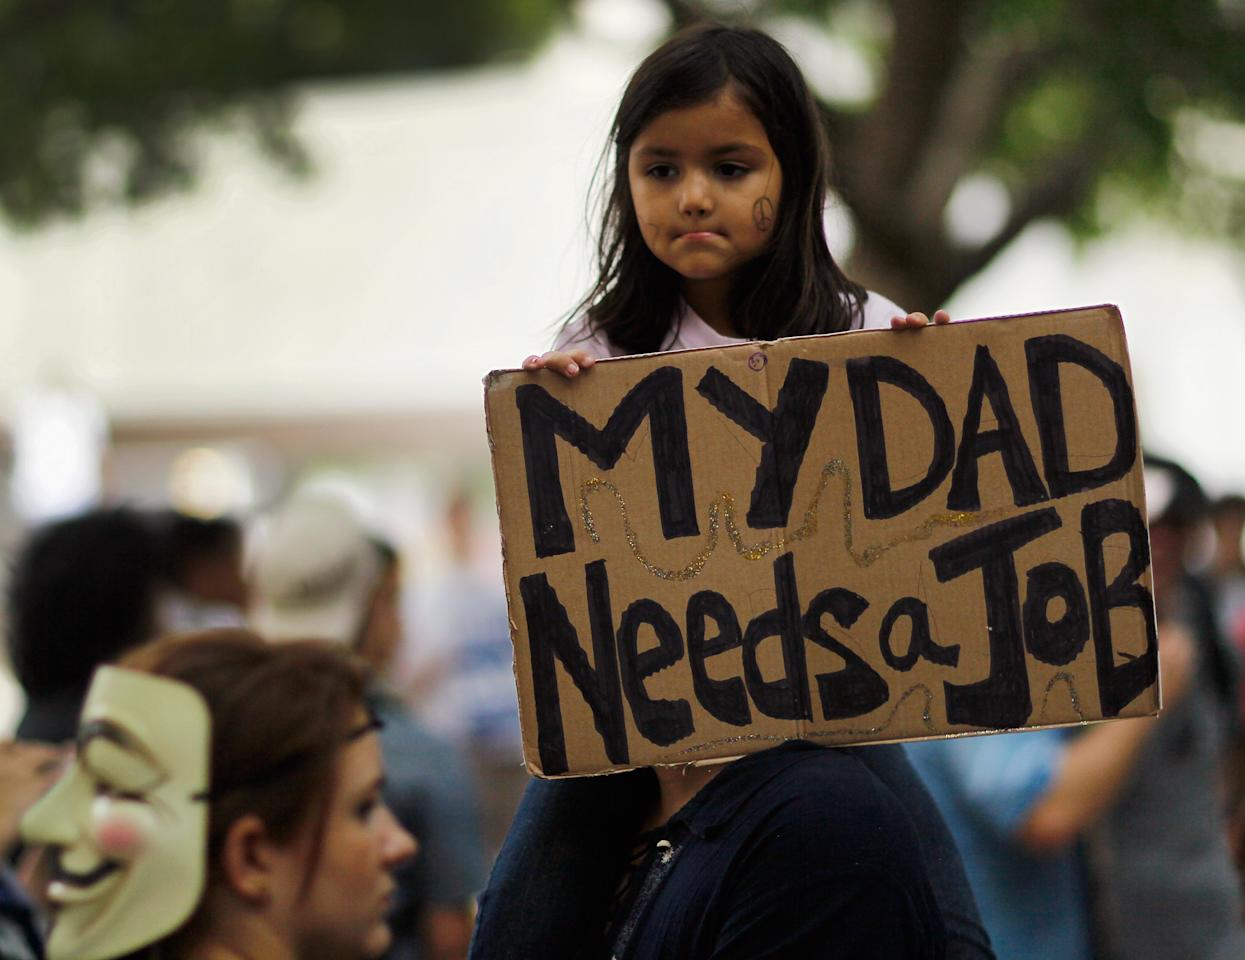 """MIAMI, FL - OCTOBER 15: Anabella Campuzano sits on the shoulders of her father, Camilo Campuzano as she holds a sign that reads,"""" My Dad Needs a Job""""' as they particpate in an Occupy Miami protest on October 15, 2011 in Miami, Florida. Thousands of people are taking to the streets in cities across the world today in demonstrations inspired by the 'Occupy Wall Street' protests in New York City, an estimated 1,000 people showed up to participate in the Miami protest.  (Photo by Joe Raedle/Getty Images)"""